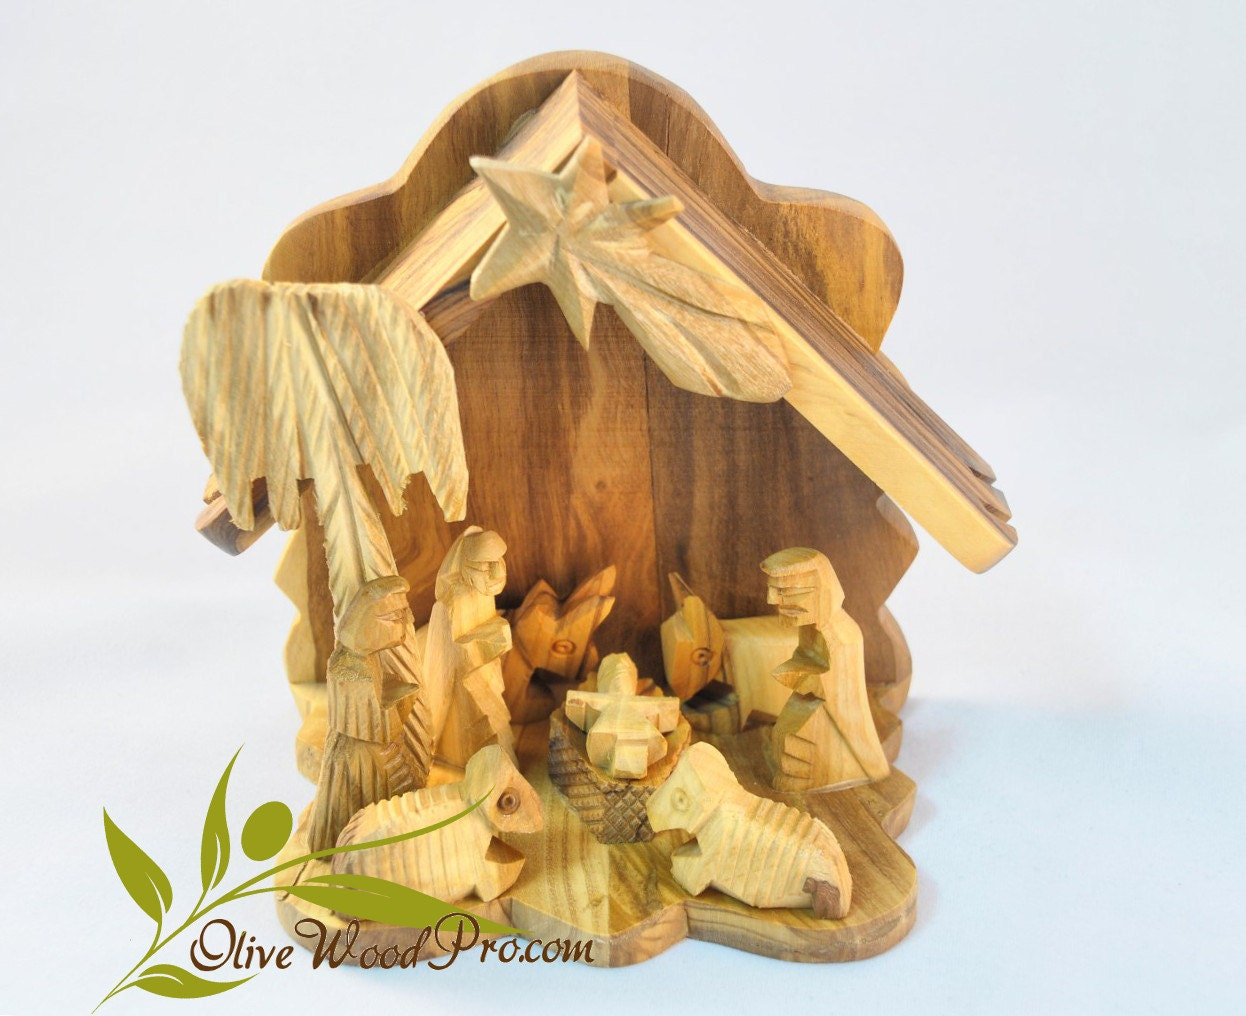 Wooden Hand Carved Nativity Sets ~ Olive wood hand carved christmas tree nativity holy family set